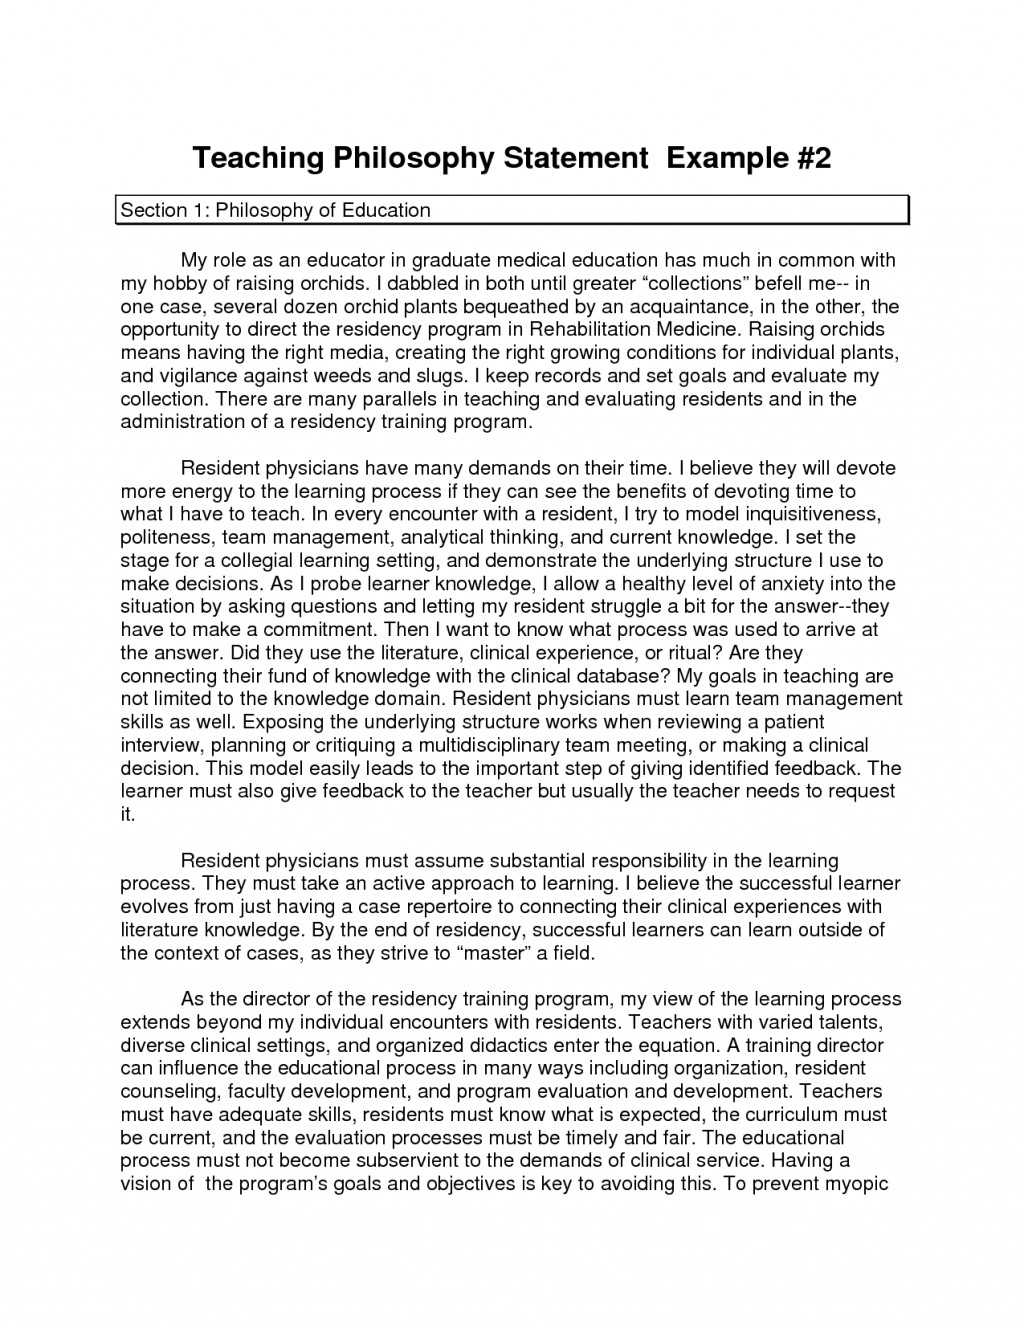 016 Philosophy Ofng Essay Writing Teachers Philosophical Teaching Resume Statement Example Examples Gxart Essayphilosophical Galictis Science Teacher Format Pdf Human Services Fantastic Of Nursing College Large